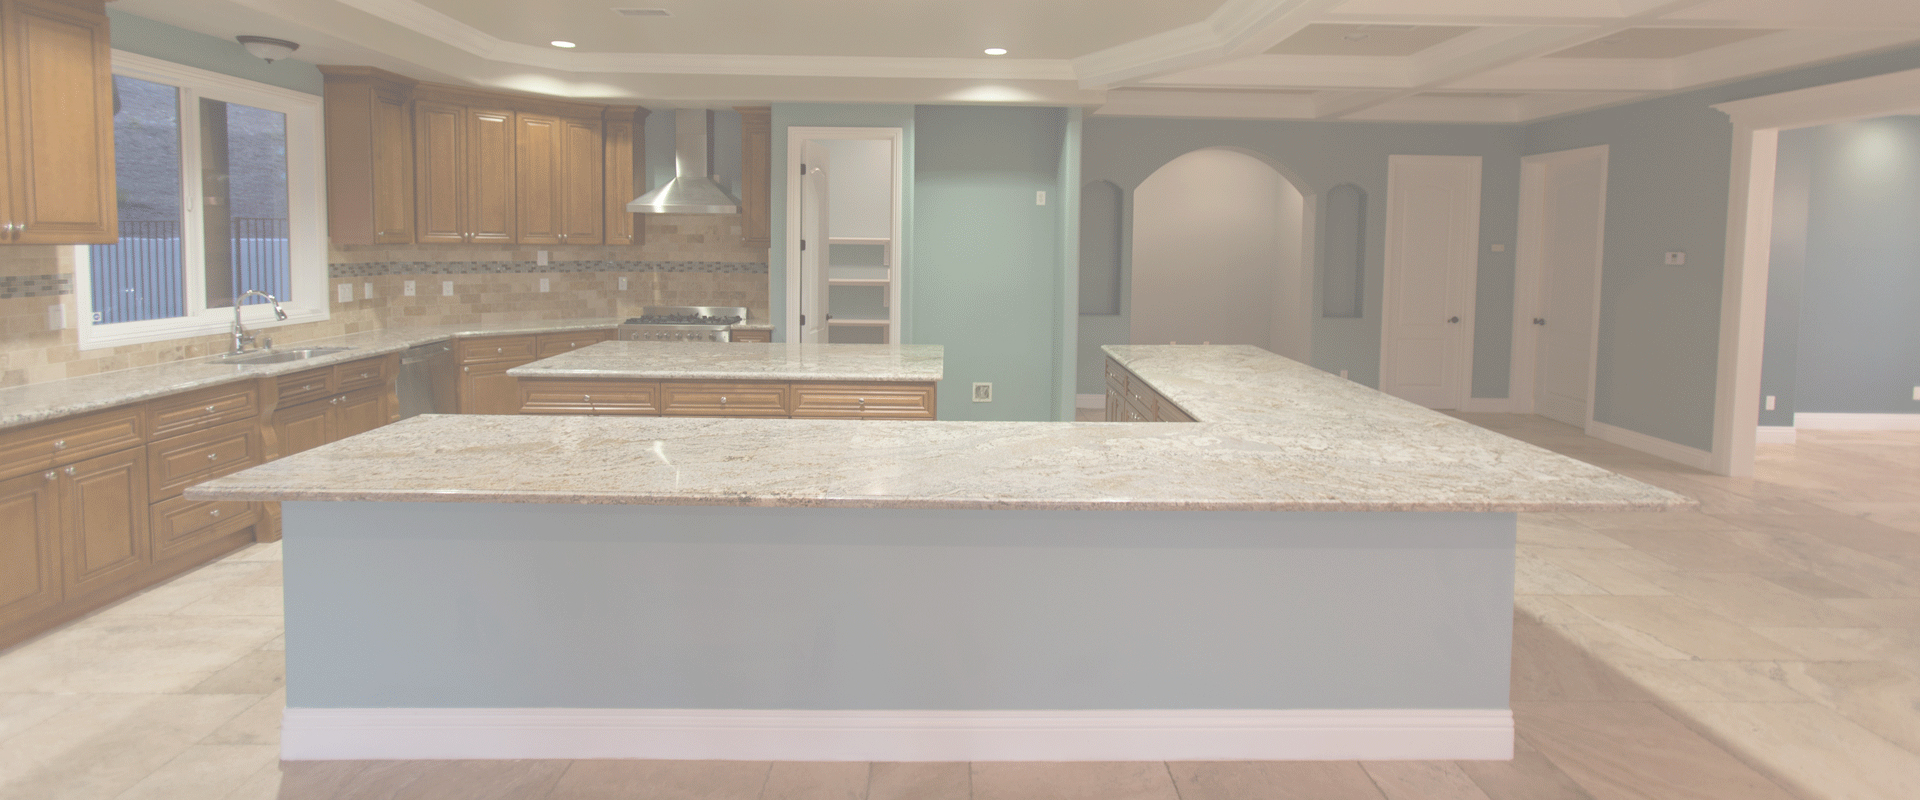 GoldstoneKitchen1920x800w